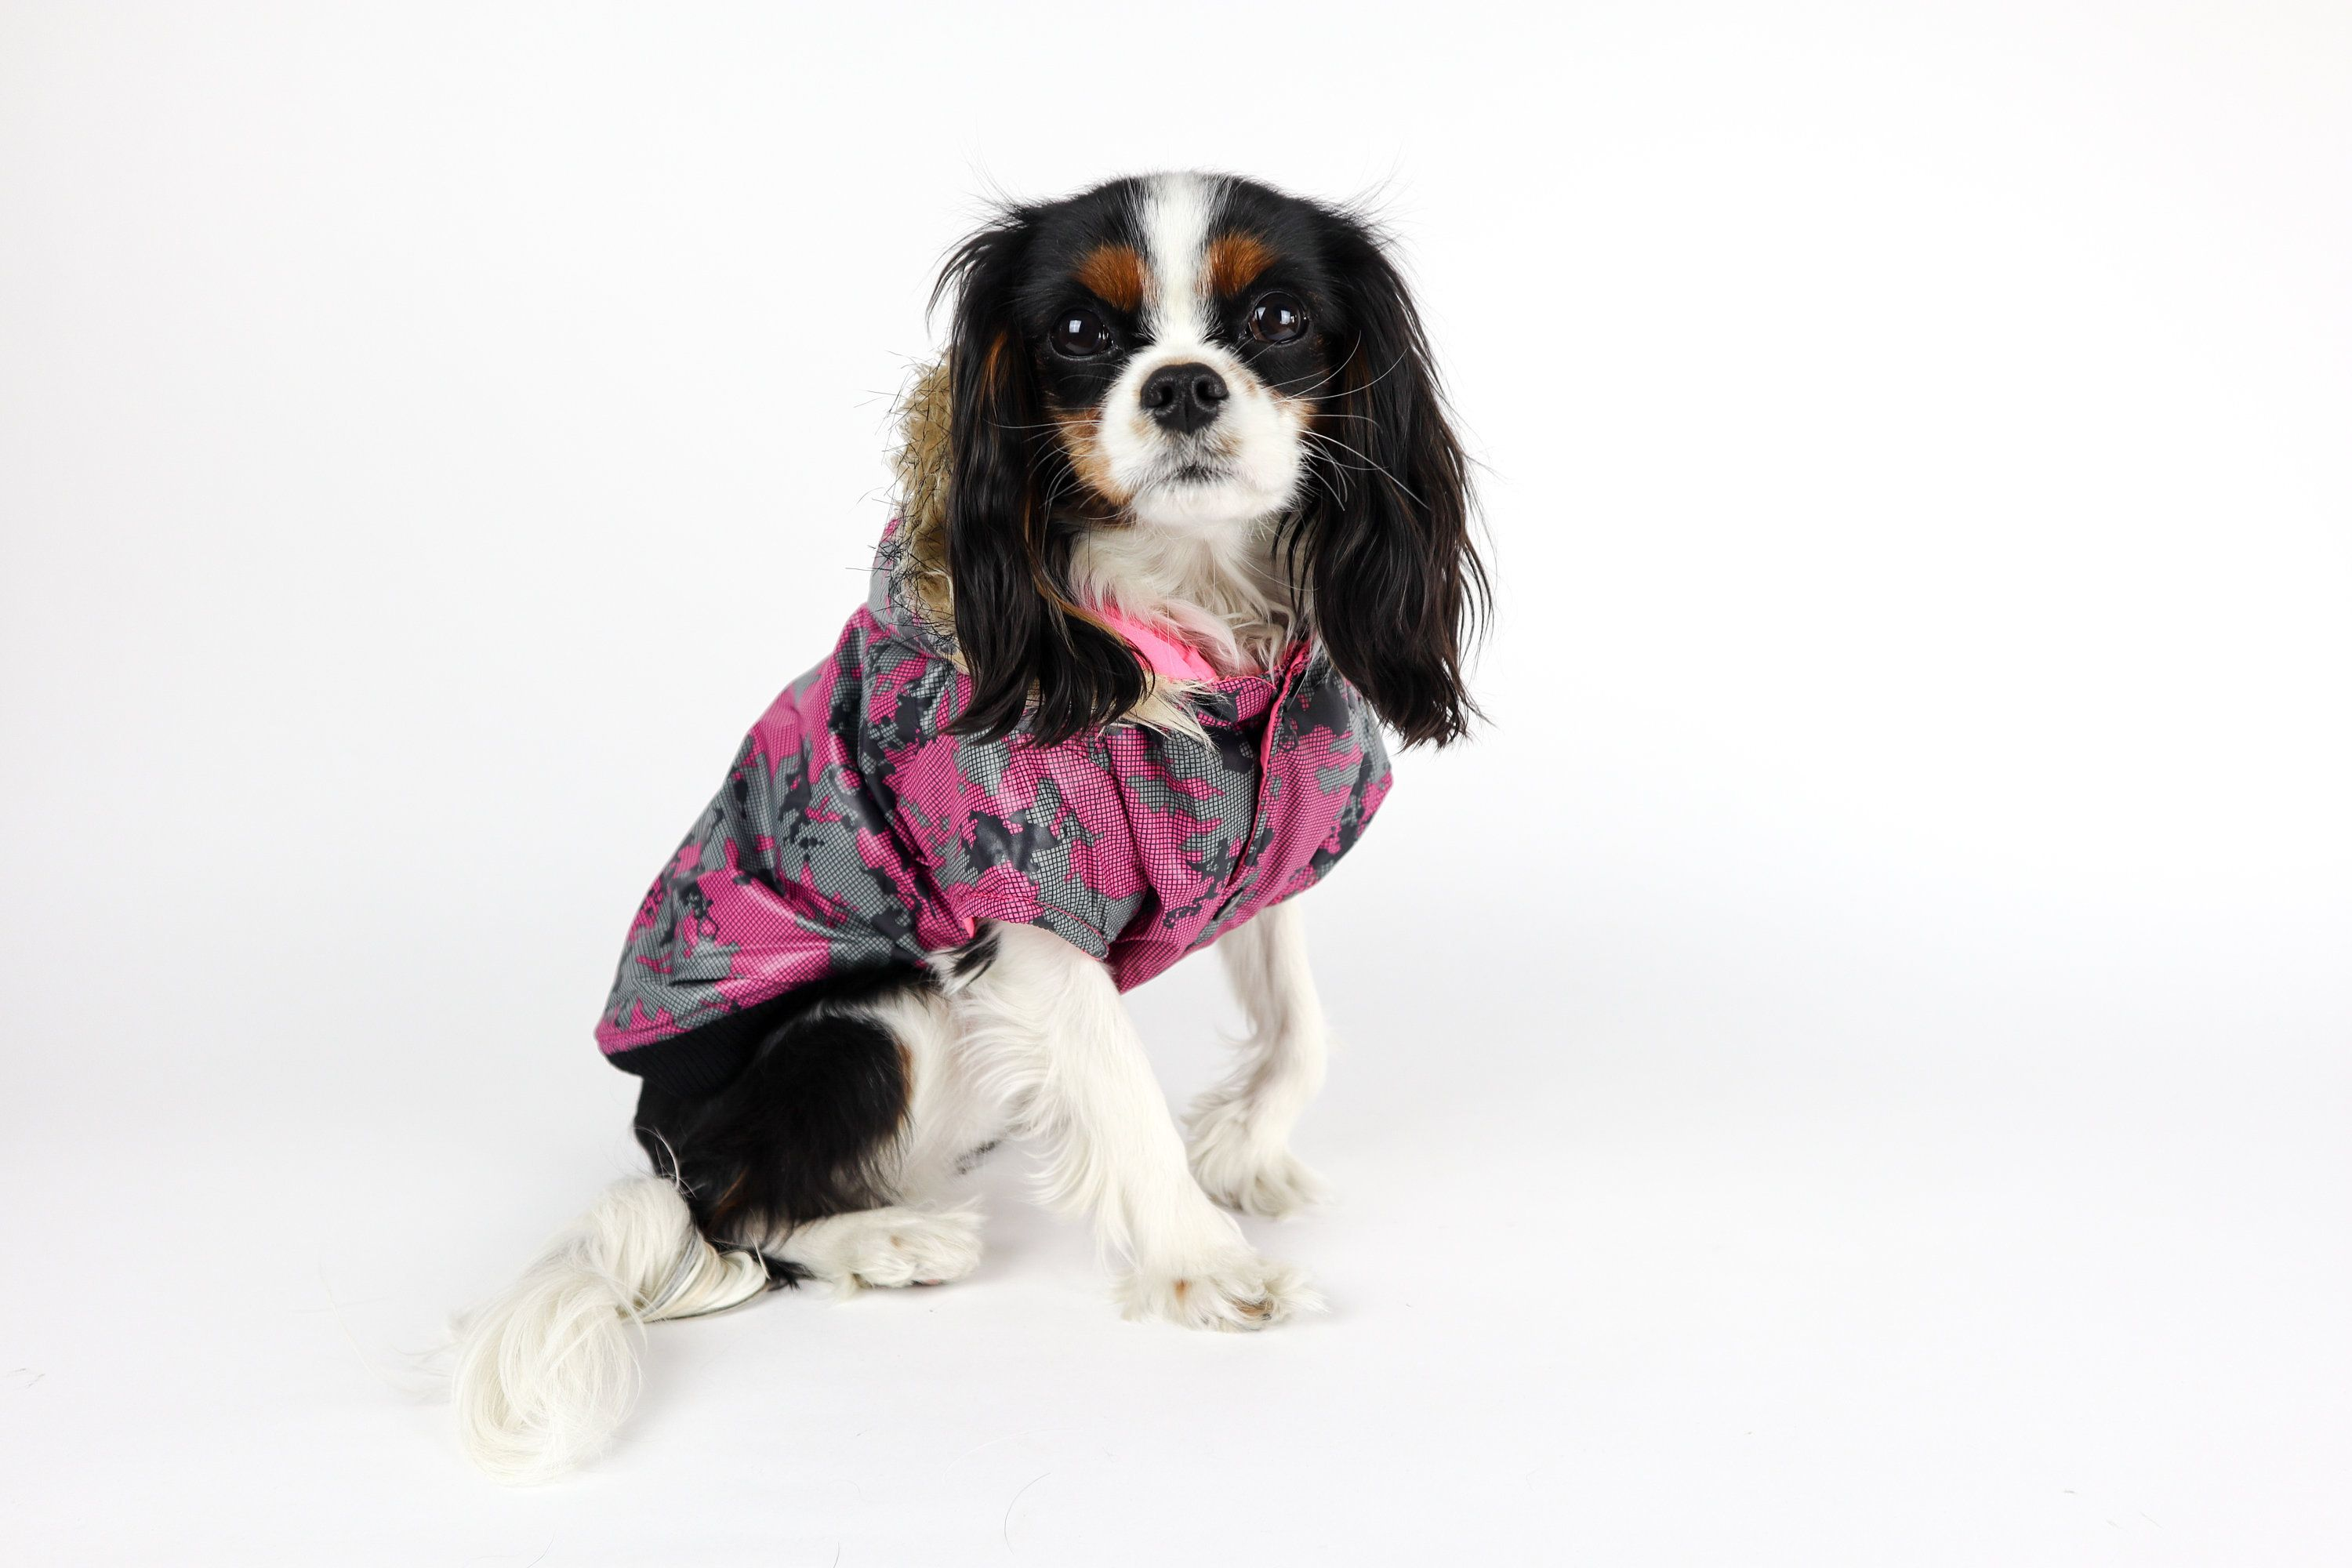 Reversible Dog Parka Jacket With Images Dog Parka Dog Clothes Puppy Clothes